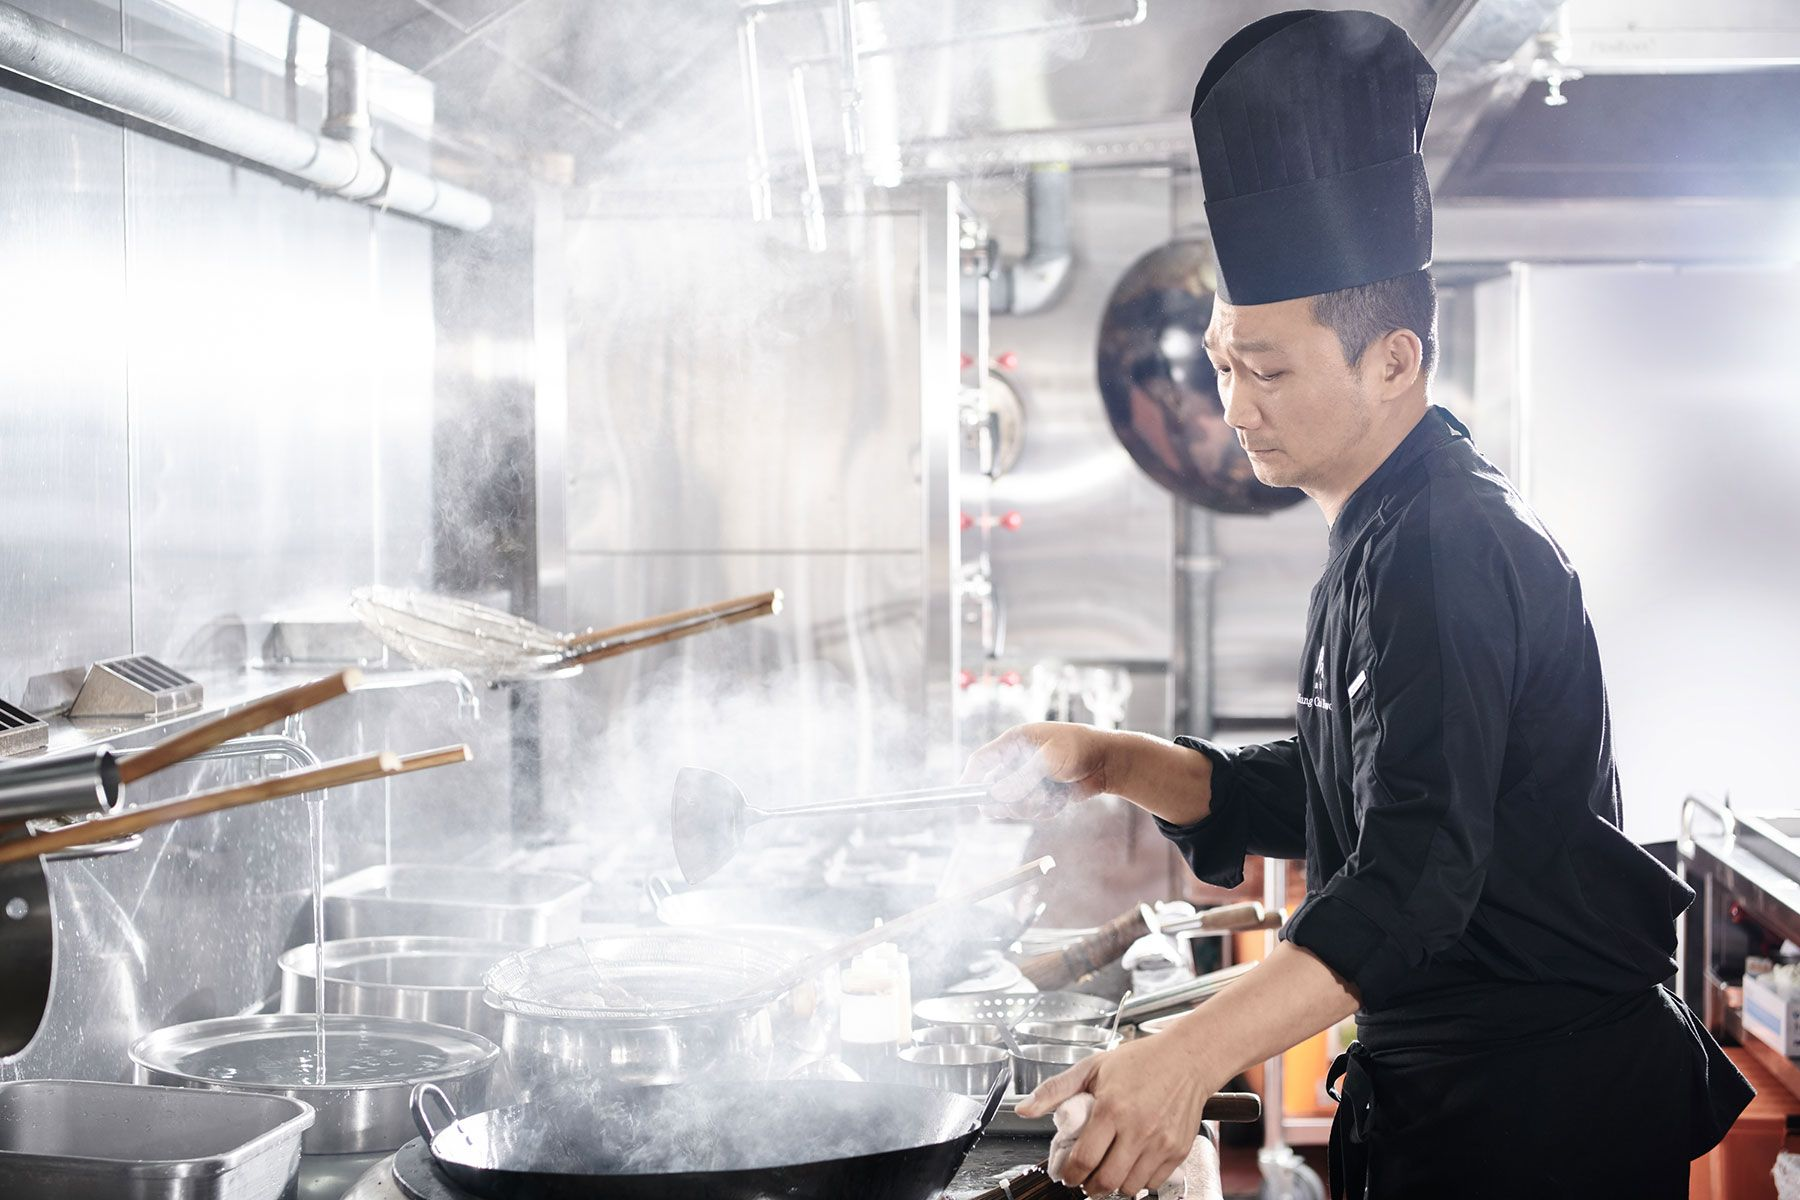 With Dining Restrictions, What Are Hong Kong's Chefs Doing This Chinese New Year?